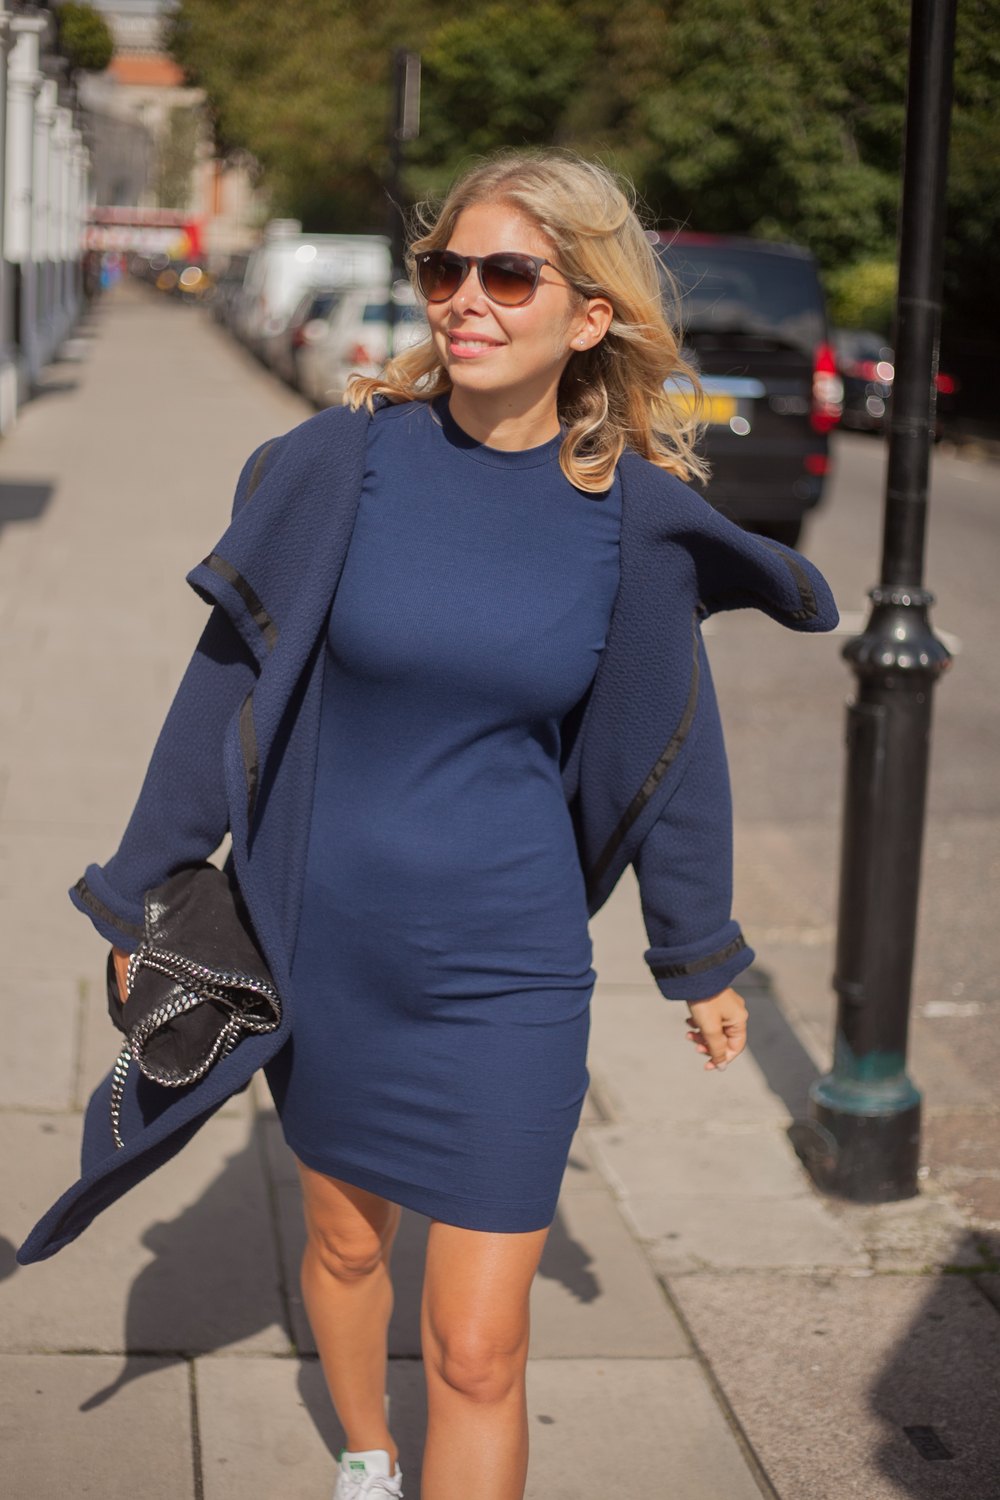 Arianna Trapani wearing A Day In A Life During London Fashion Week.